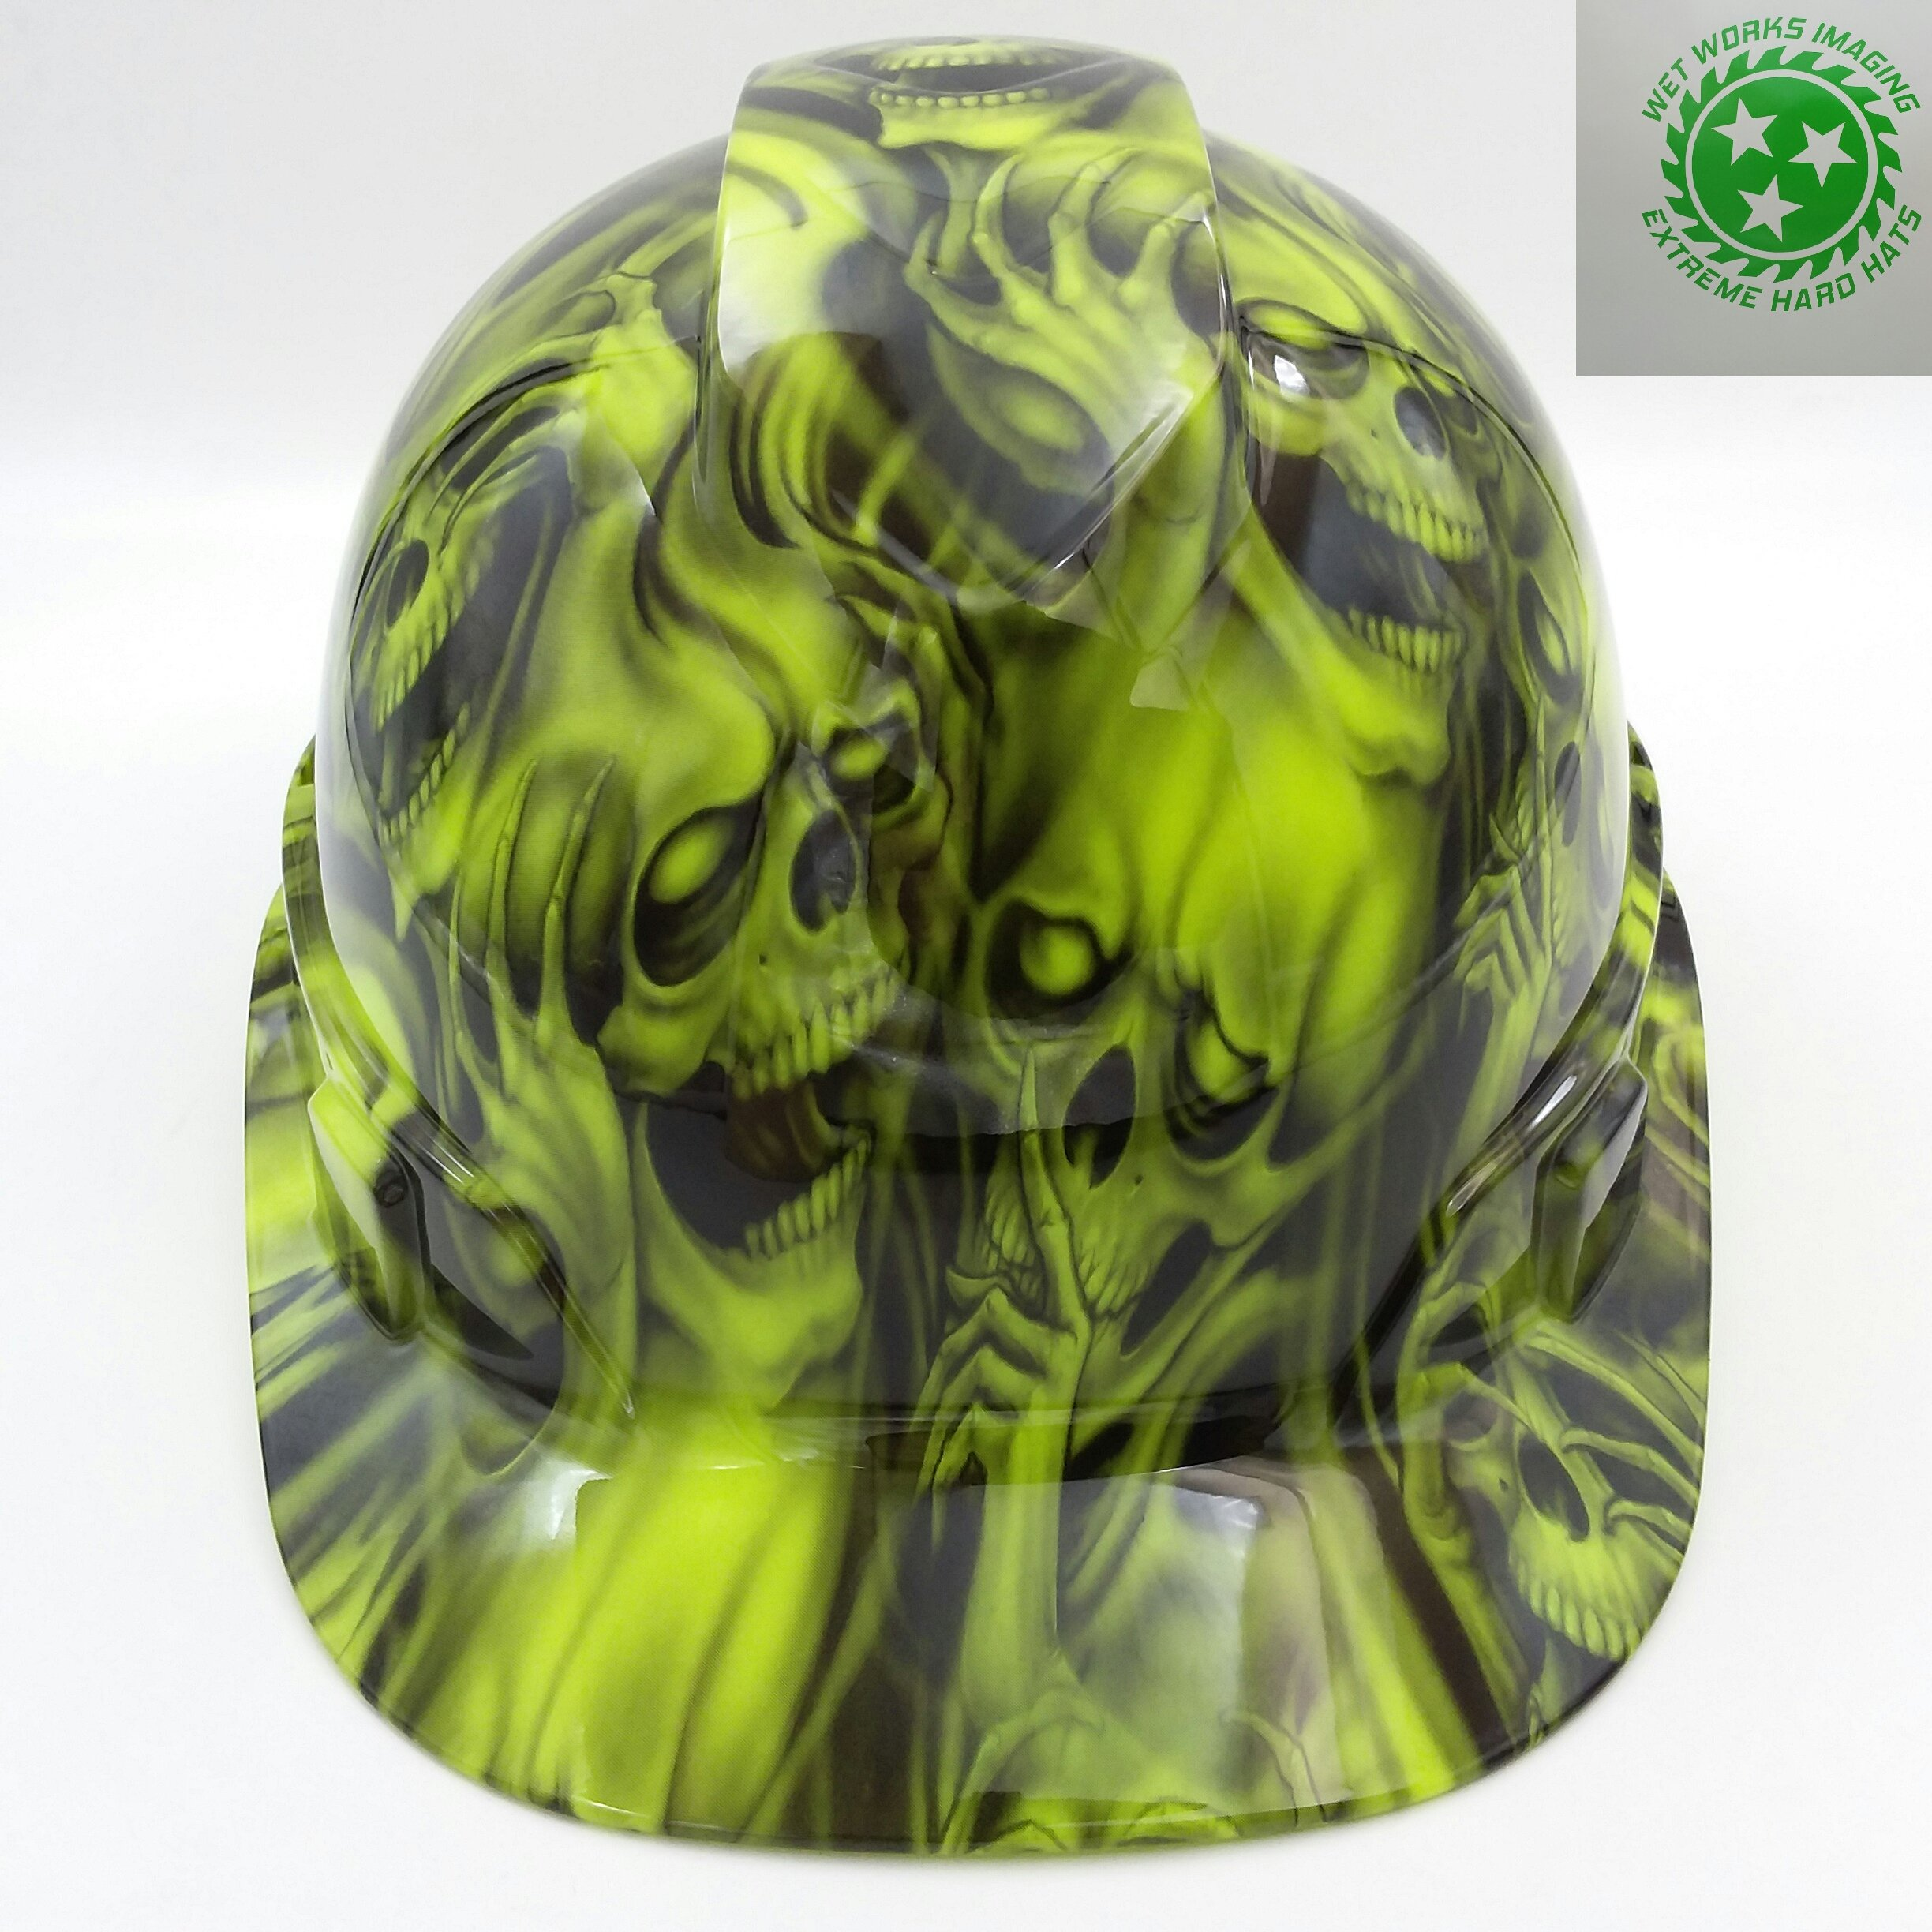 Wet Works Imaging Customized Pyramex Cap Style Green See No Evil Skulls Hard Hat With Ratcheting Suspension by Wet Works Imaging